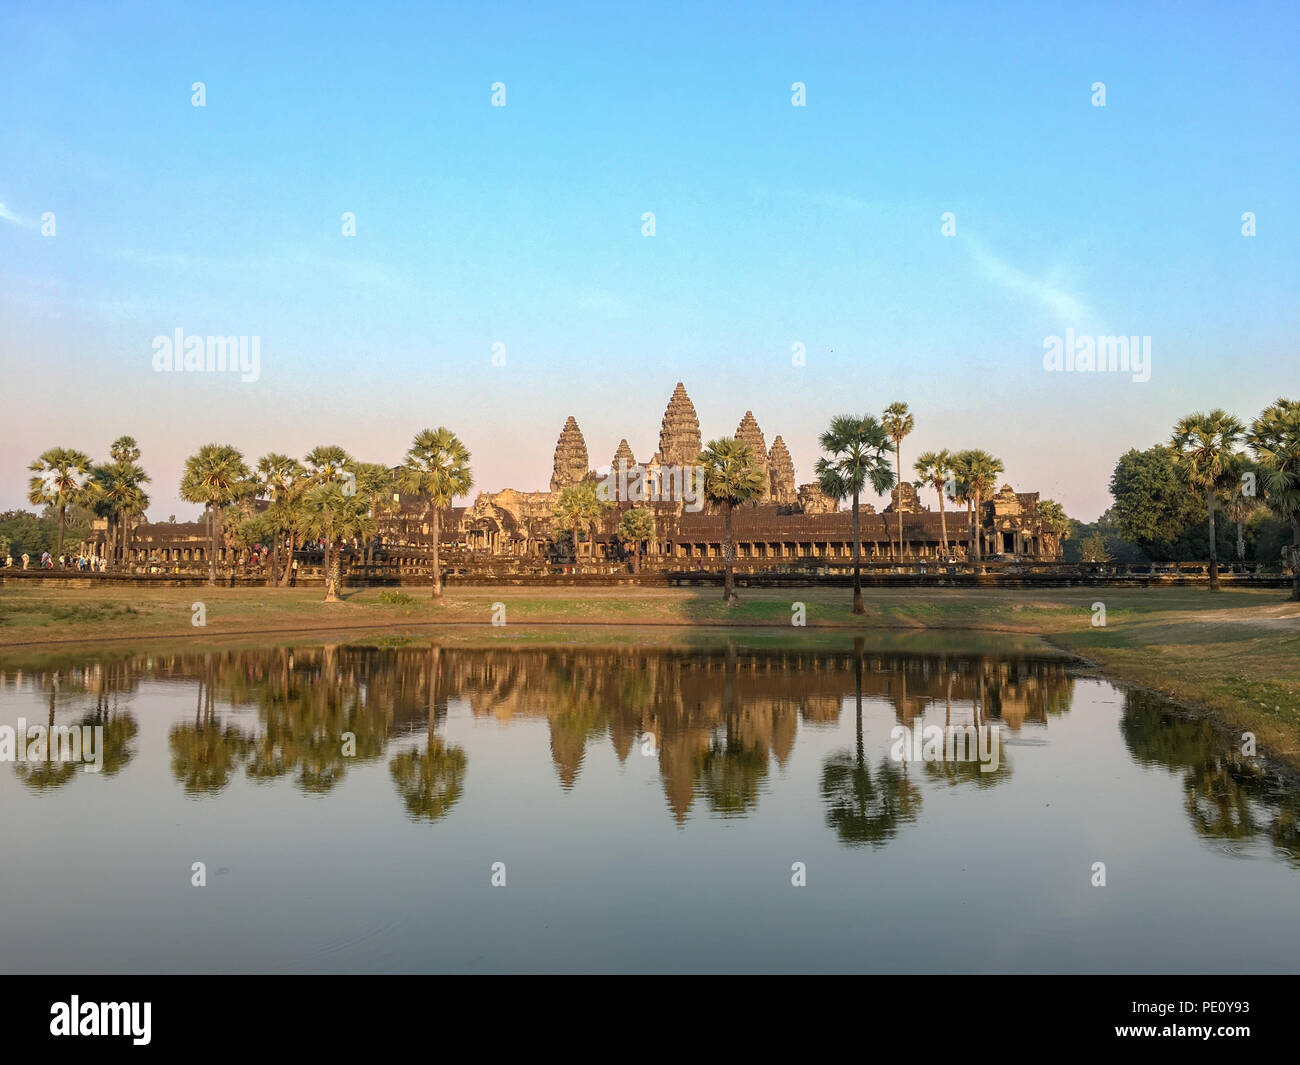 Angkor wat ,Khmer architecture and the world heritage at Siem Reap Cambodia with water reflect at sunset - Stock Image